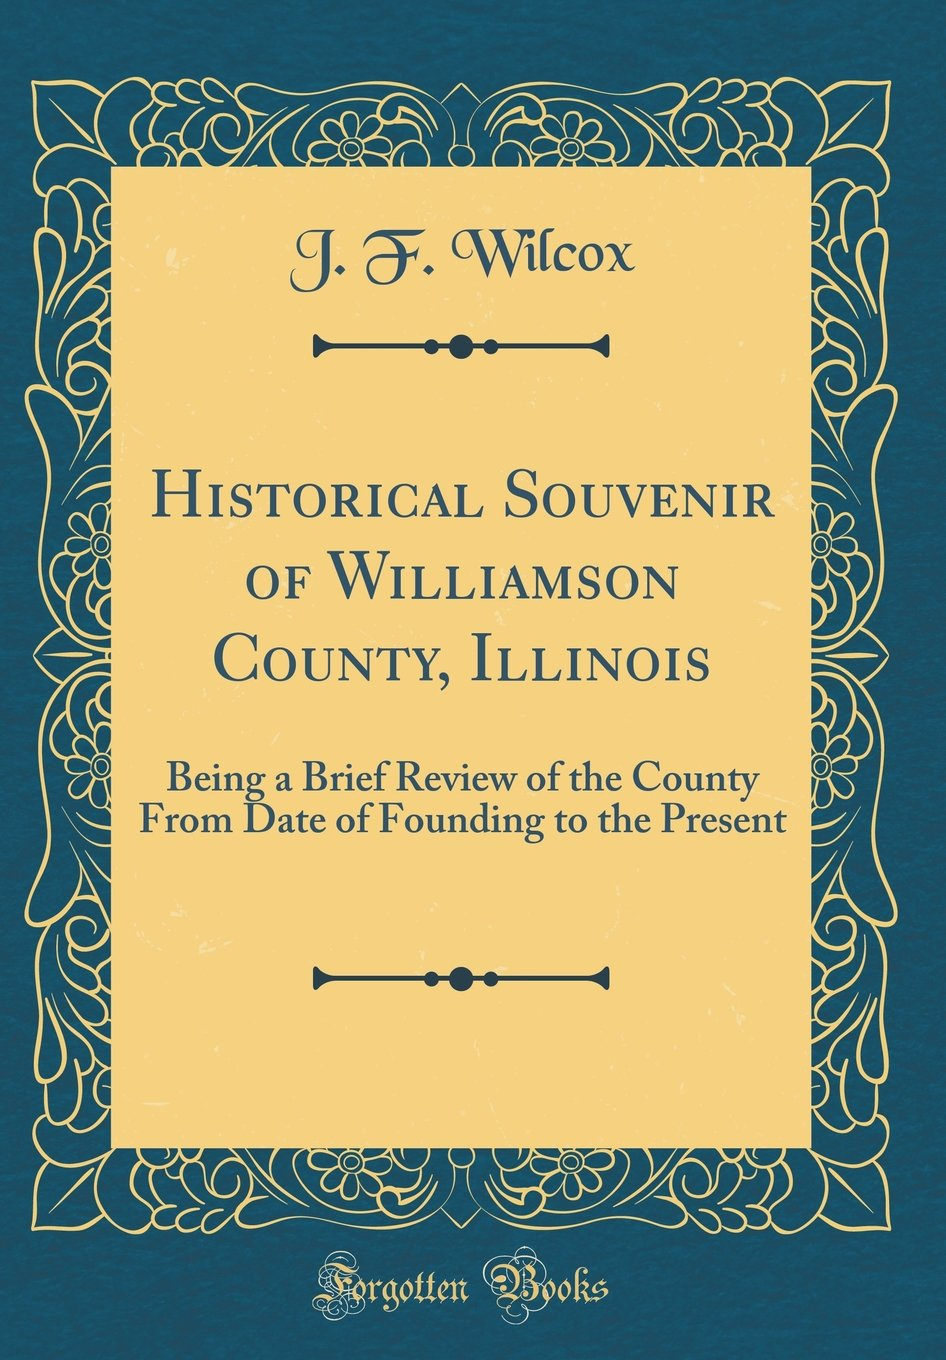 Historical Souvenir of Williamson County, Illinois: Being a Brief Review of the County From Date of Founding to the Present (Classic Reprint) pdf